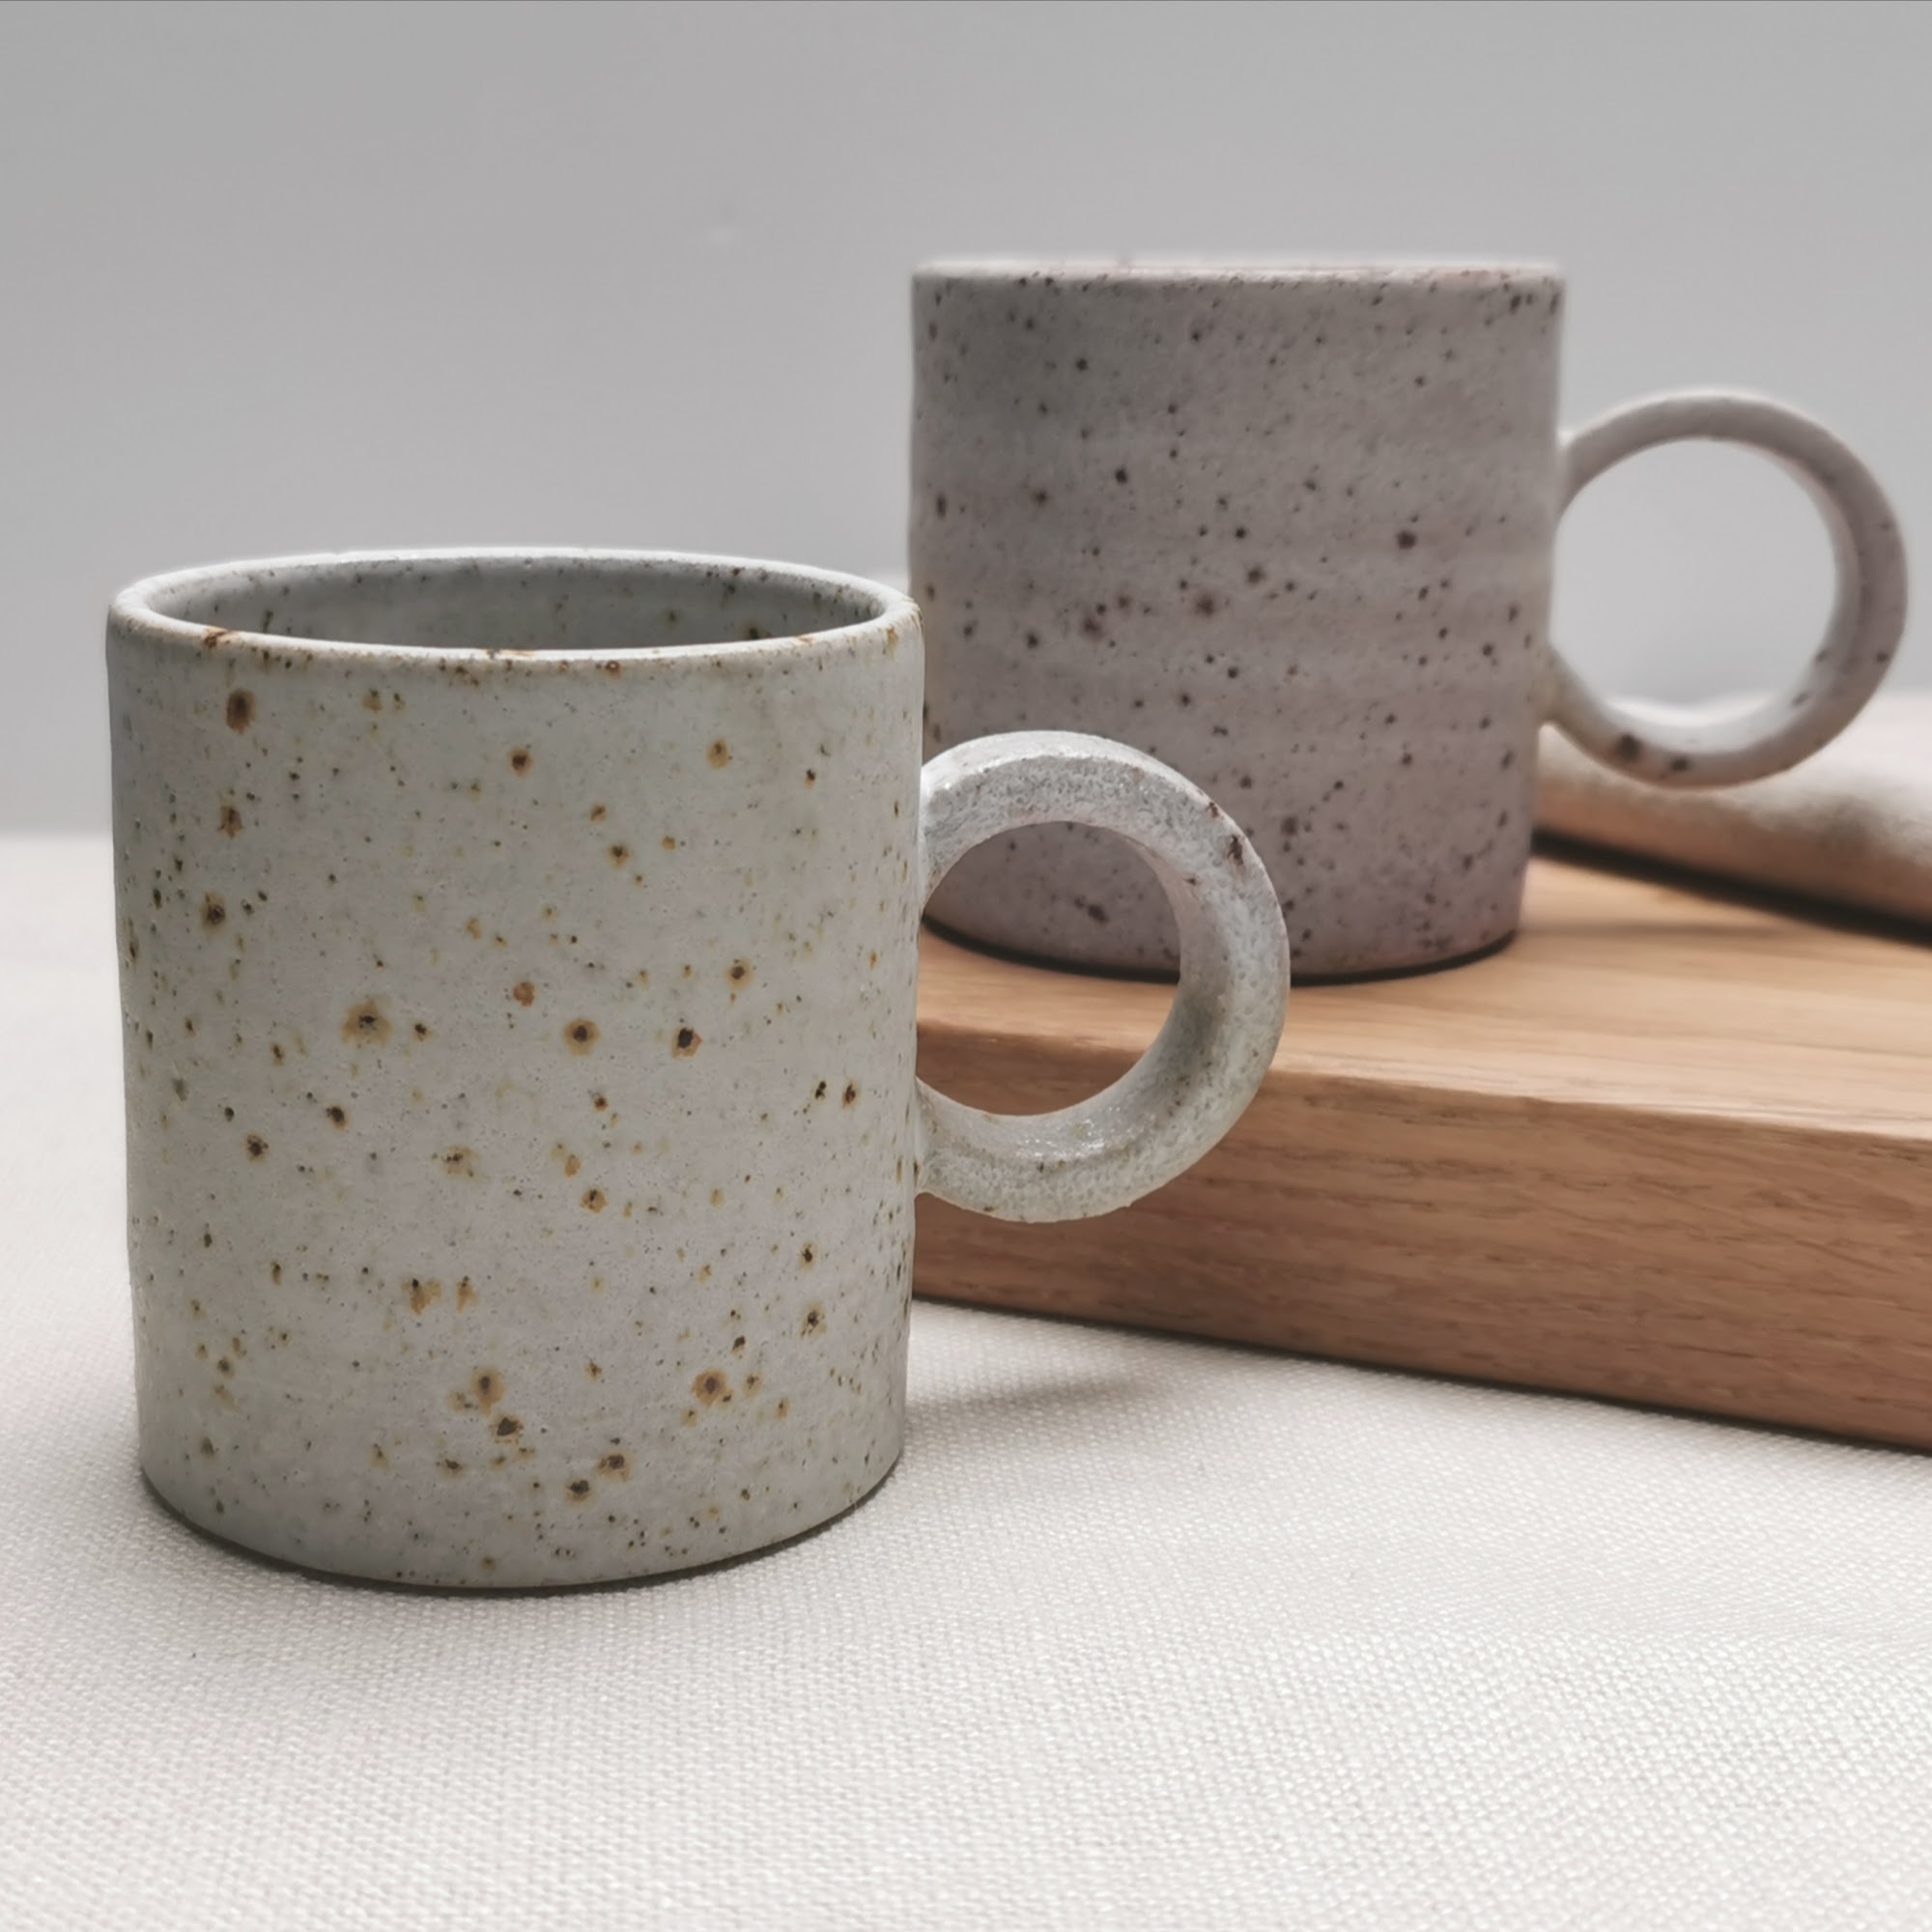 Espresso Cups by Aku Ceramics